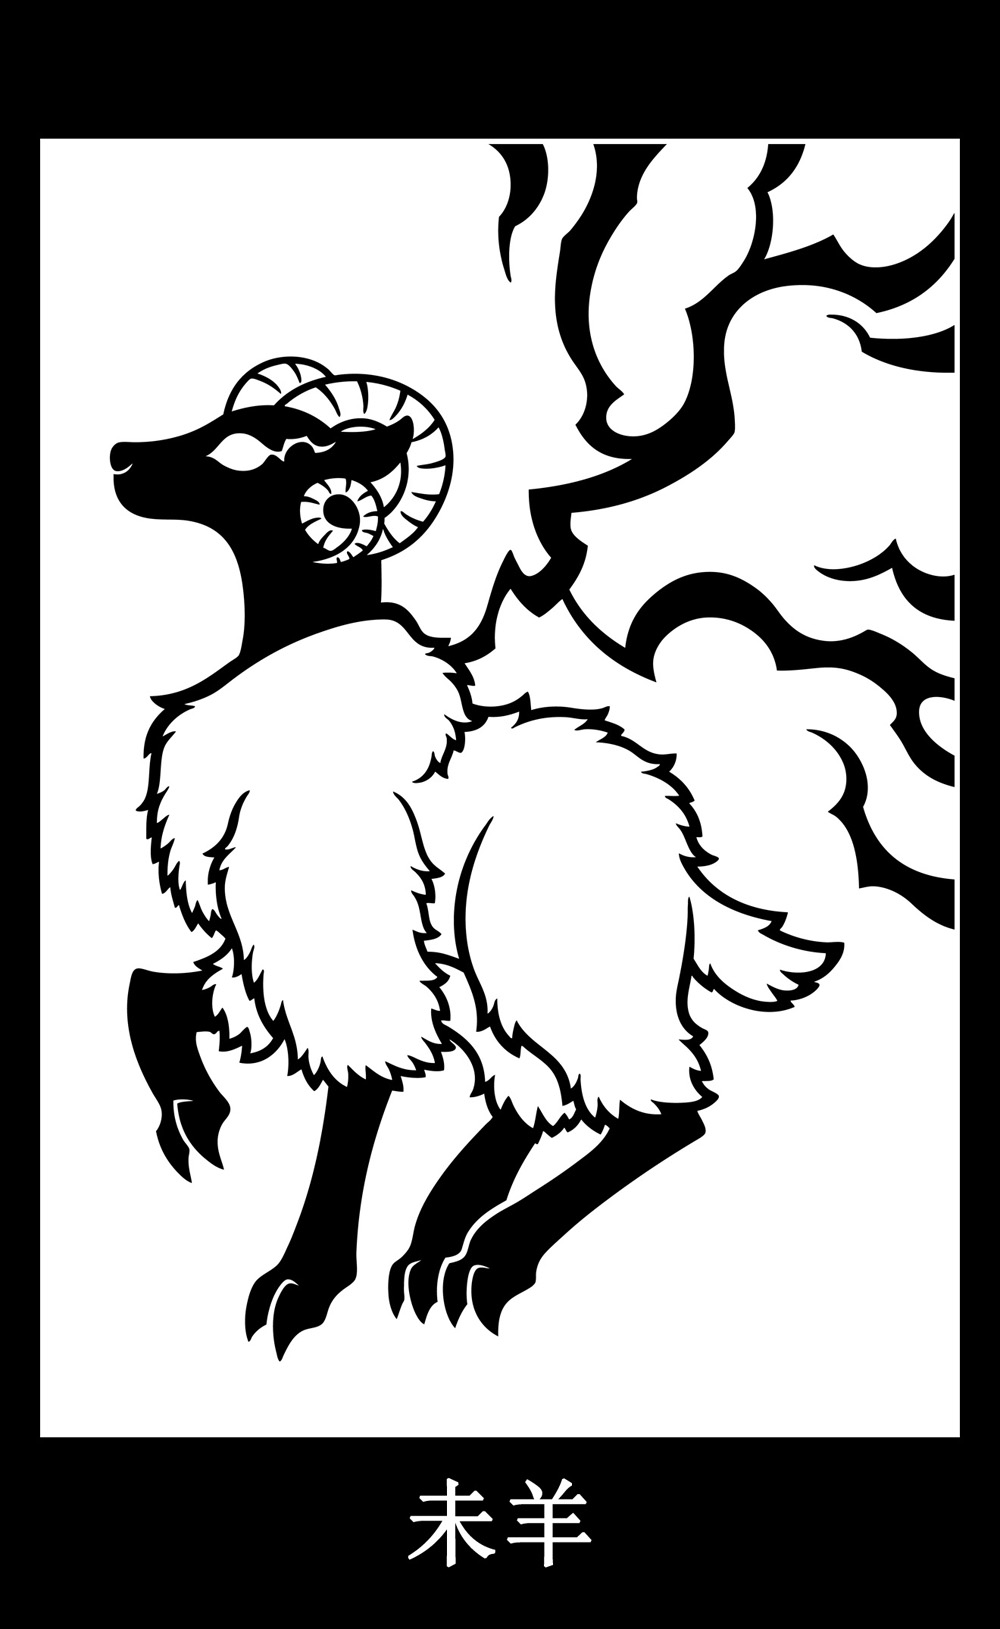 08 - Sheep/Goat - SCP-594 - Electric Sheep